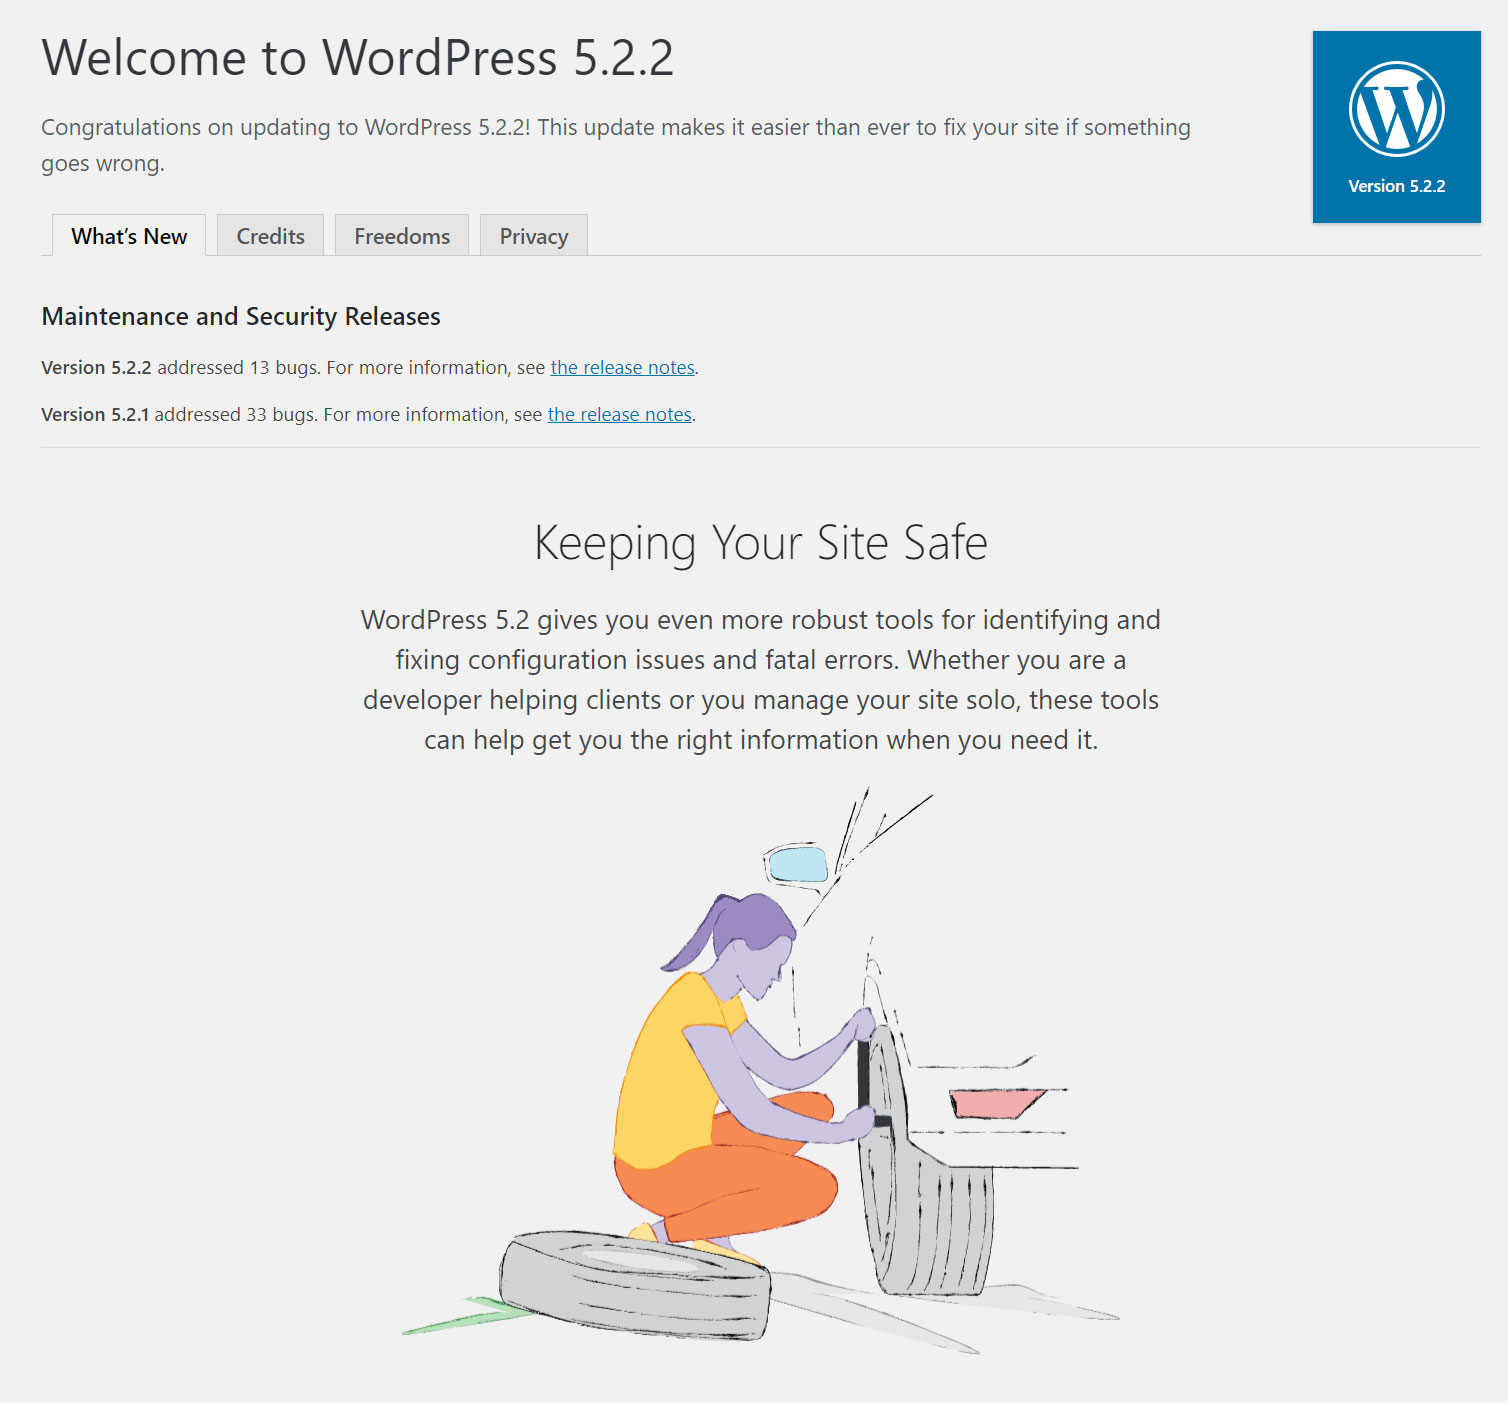 WordPress 5.2.2 gives us tools for resolving configuration problems. But that's not all!